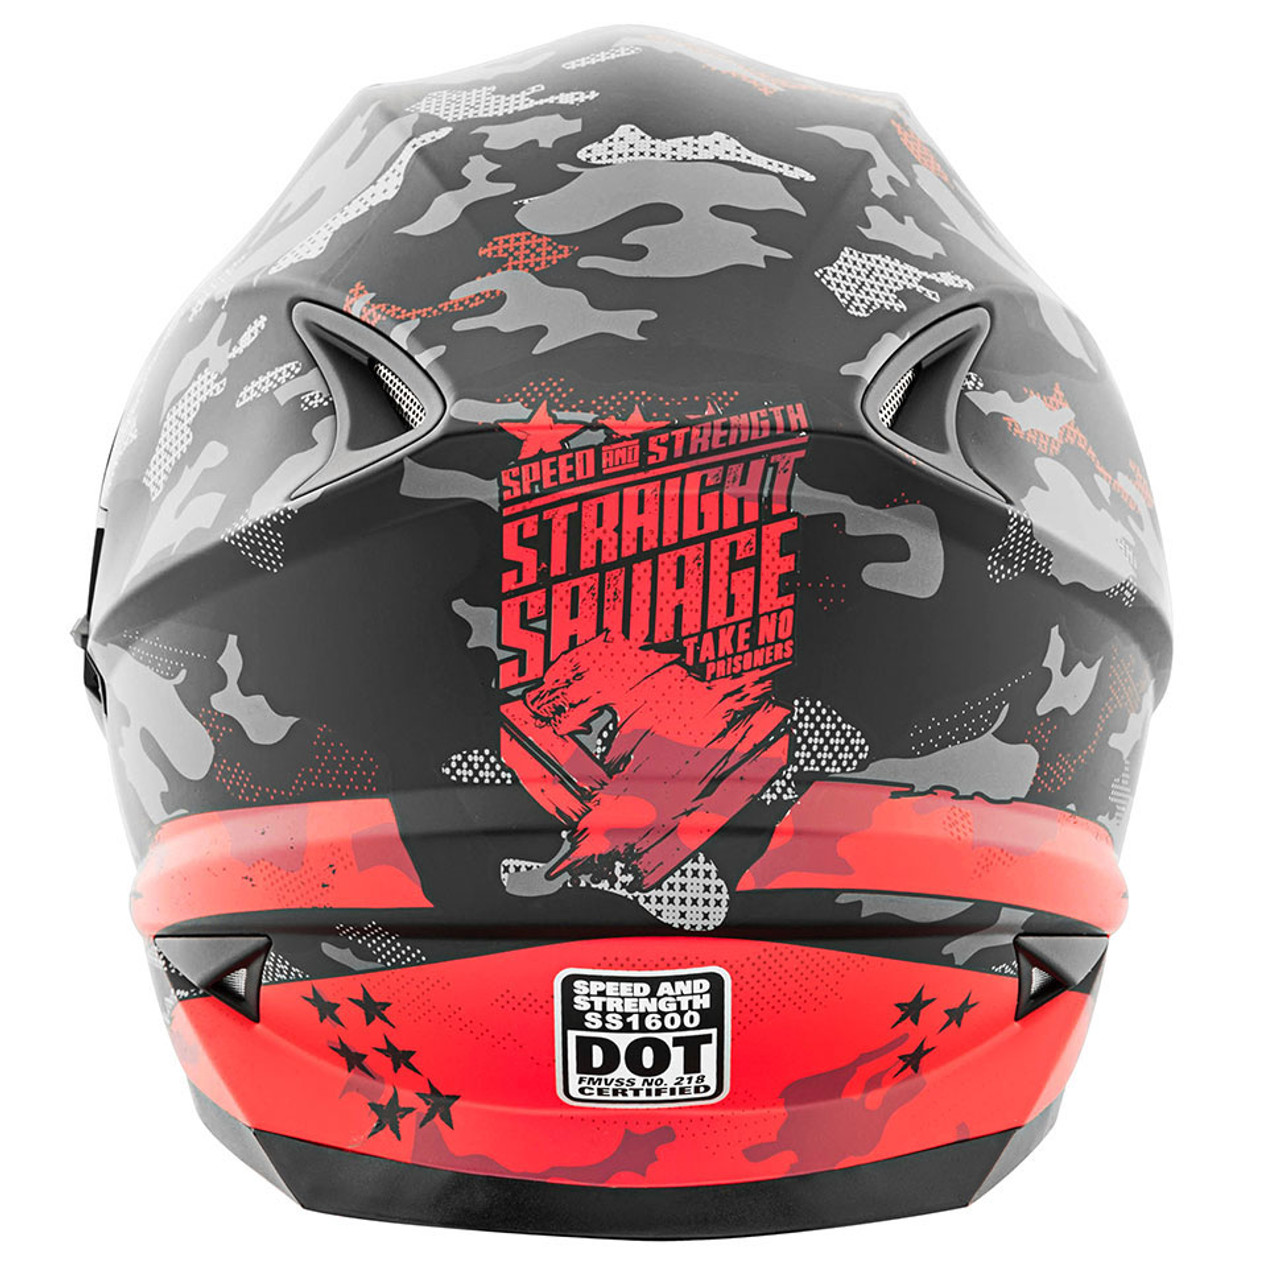 8dacace0 Speed and Strength SS1600 Straight Savage Helmet - Red/Black - Get ...